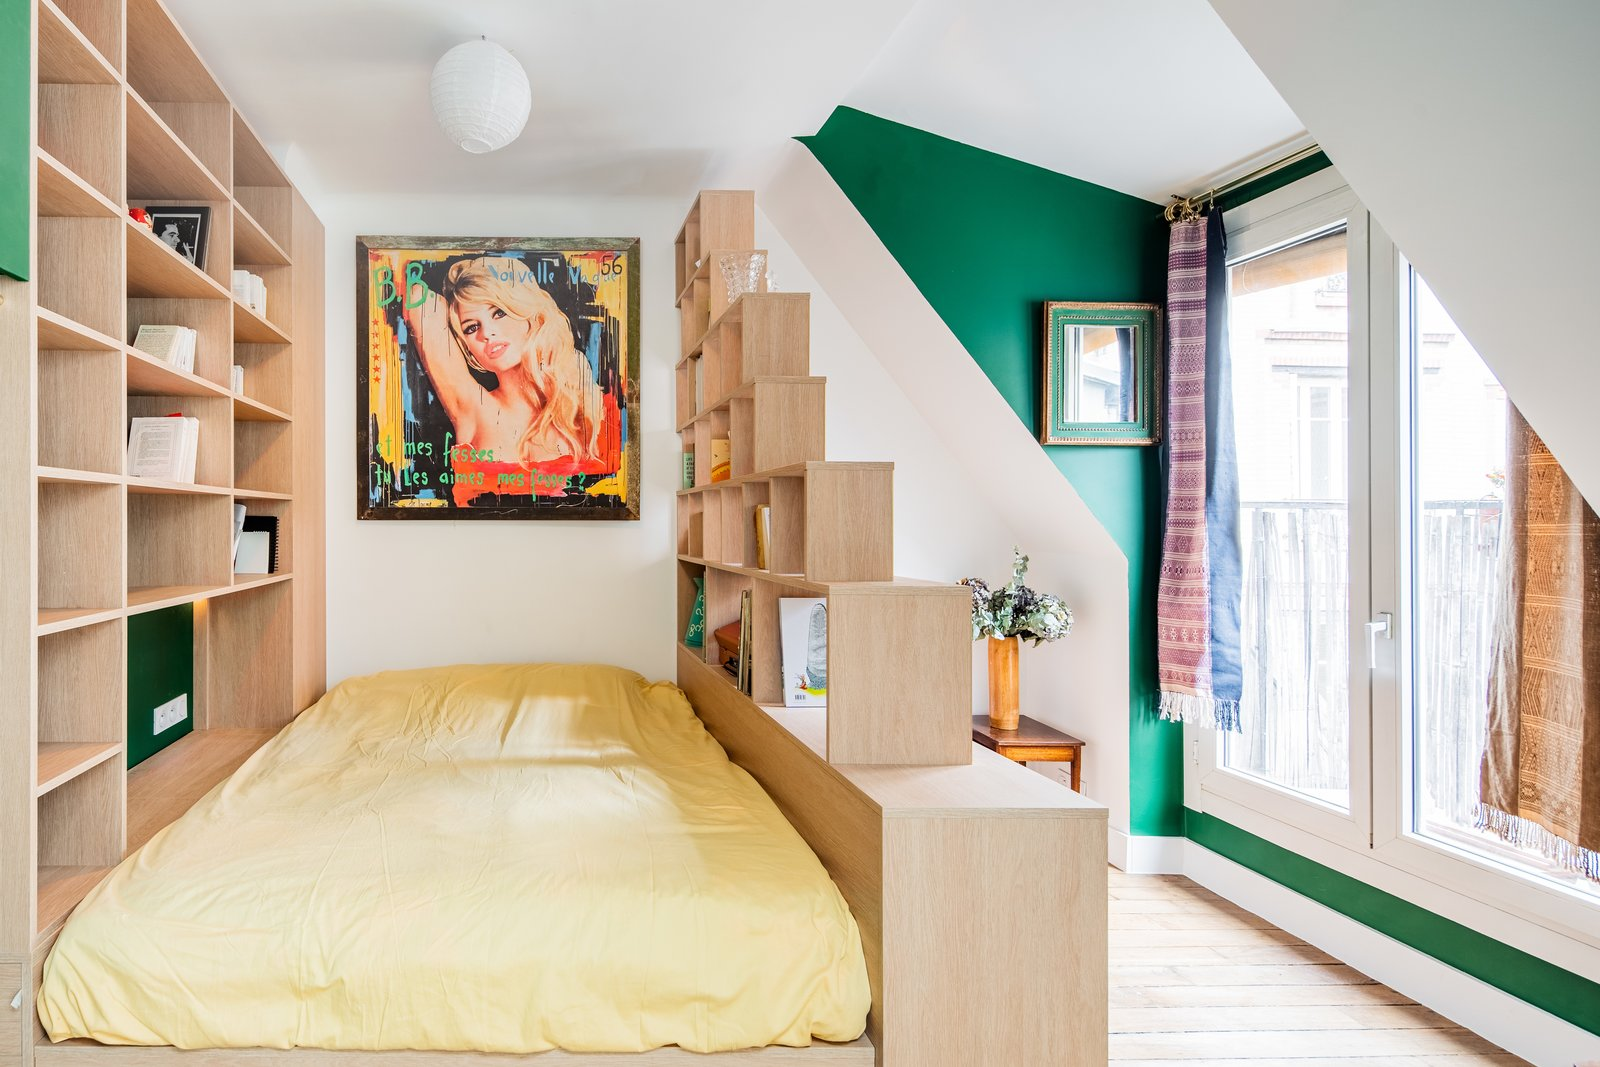 Before & After: This Hip Parisian Apartment Makes the Most of 193 Square Feet